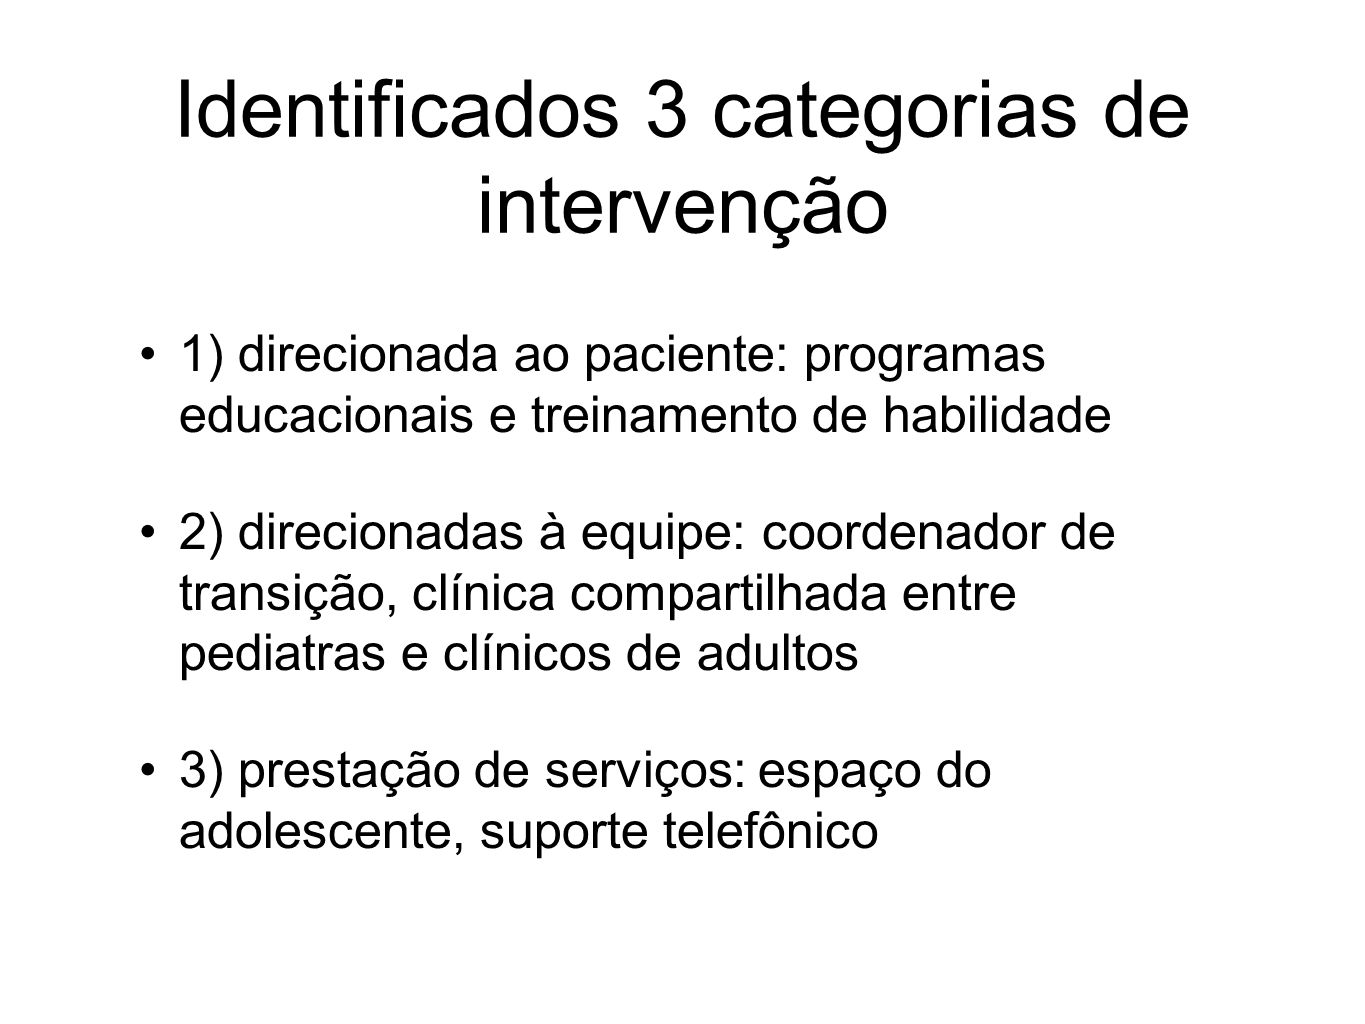 Identificados 3 categorias de intervenção